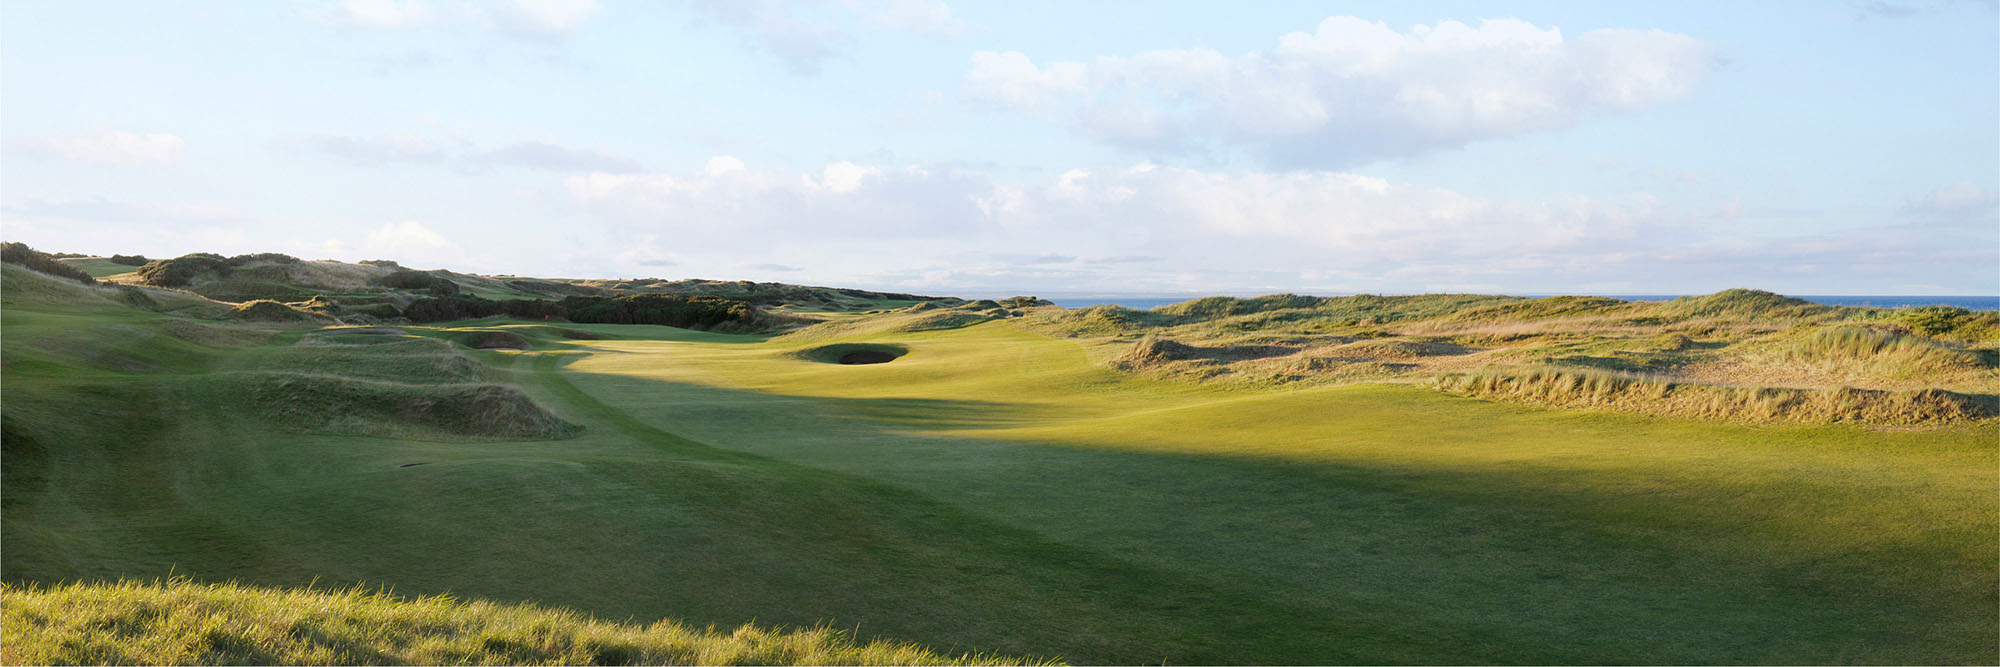 Golf Course Image - Kingsbarns No. 16